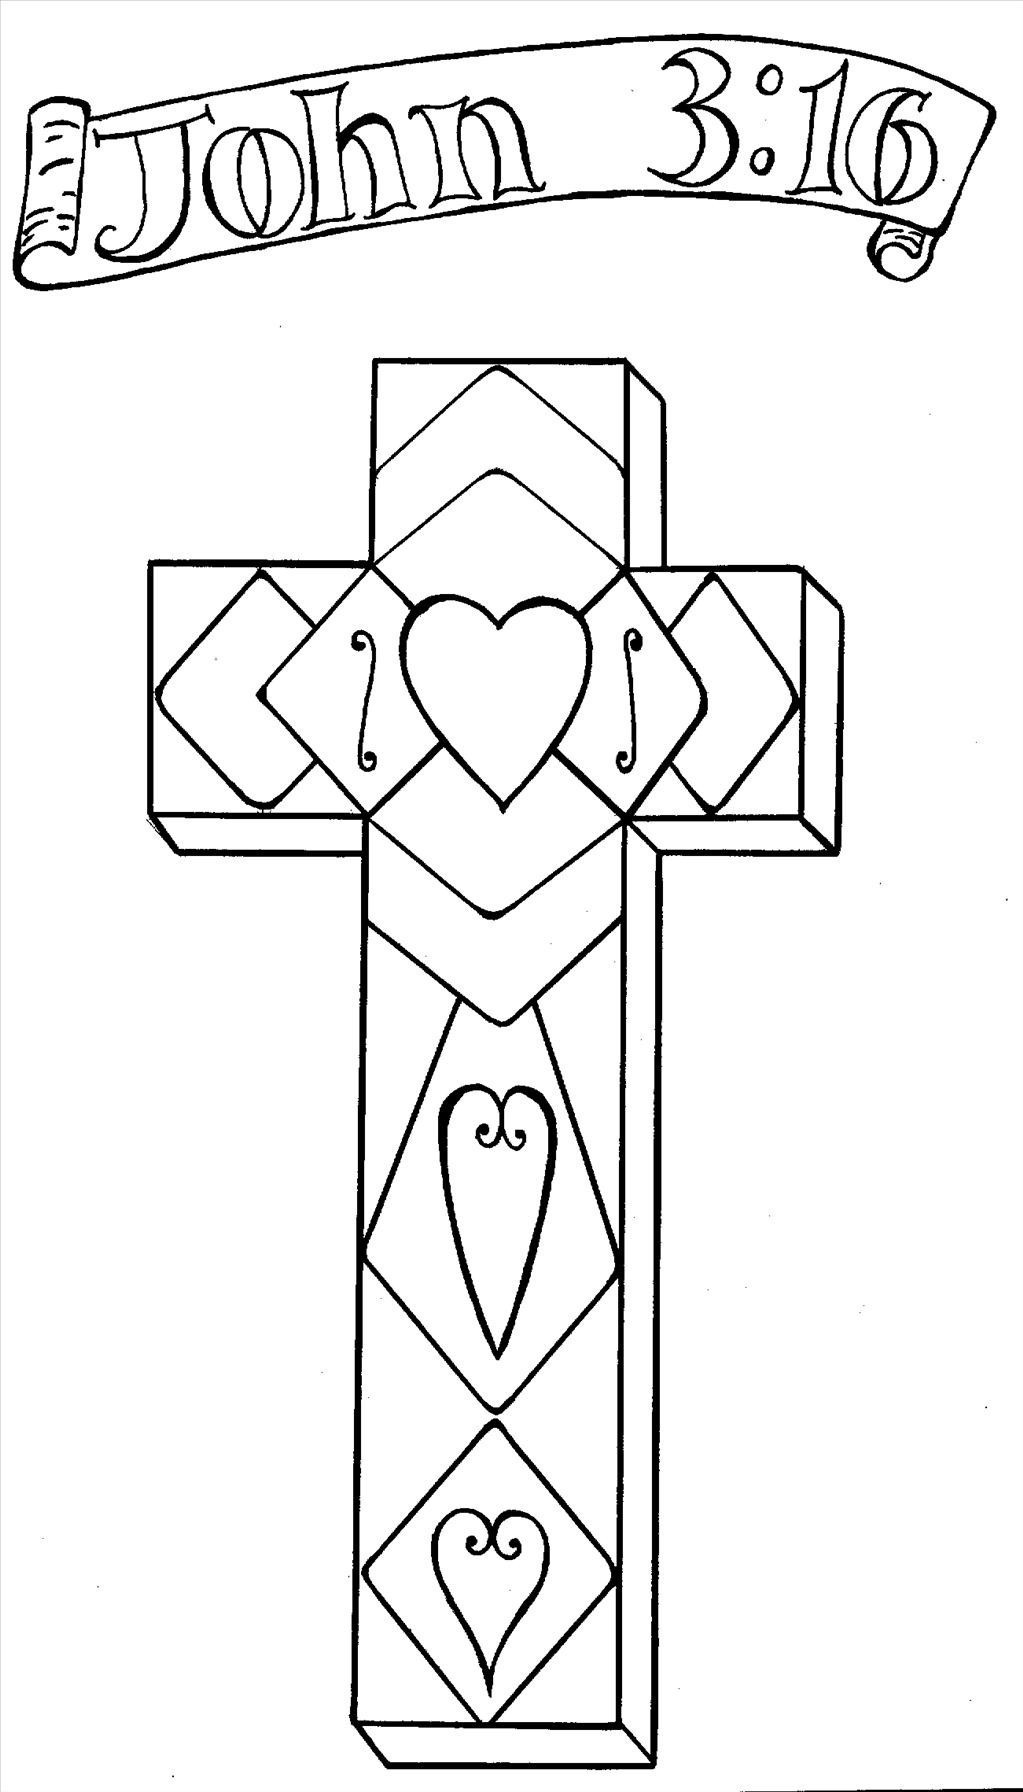 1023x1792 Cross Coloring Pages Printable Acpra Within Tixac